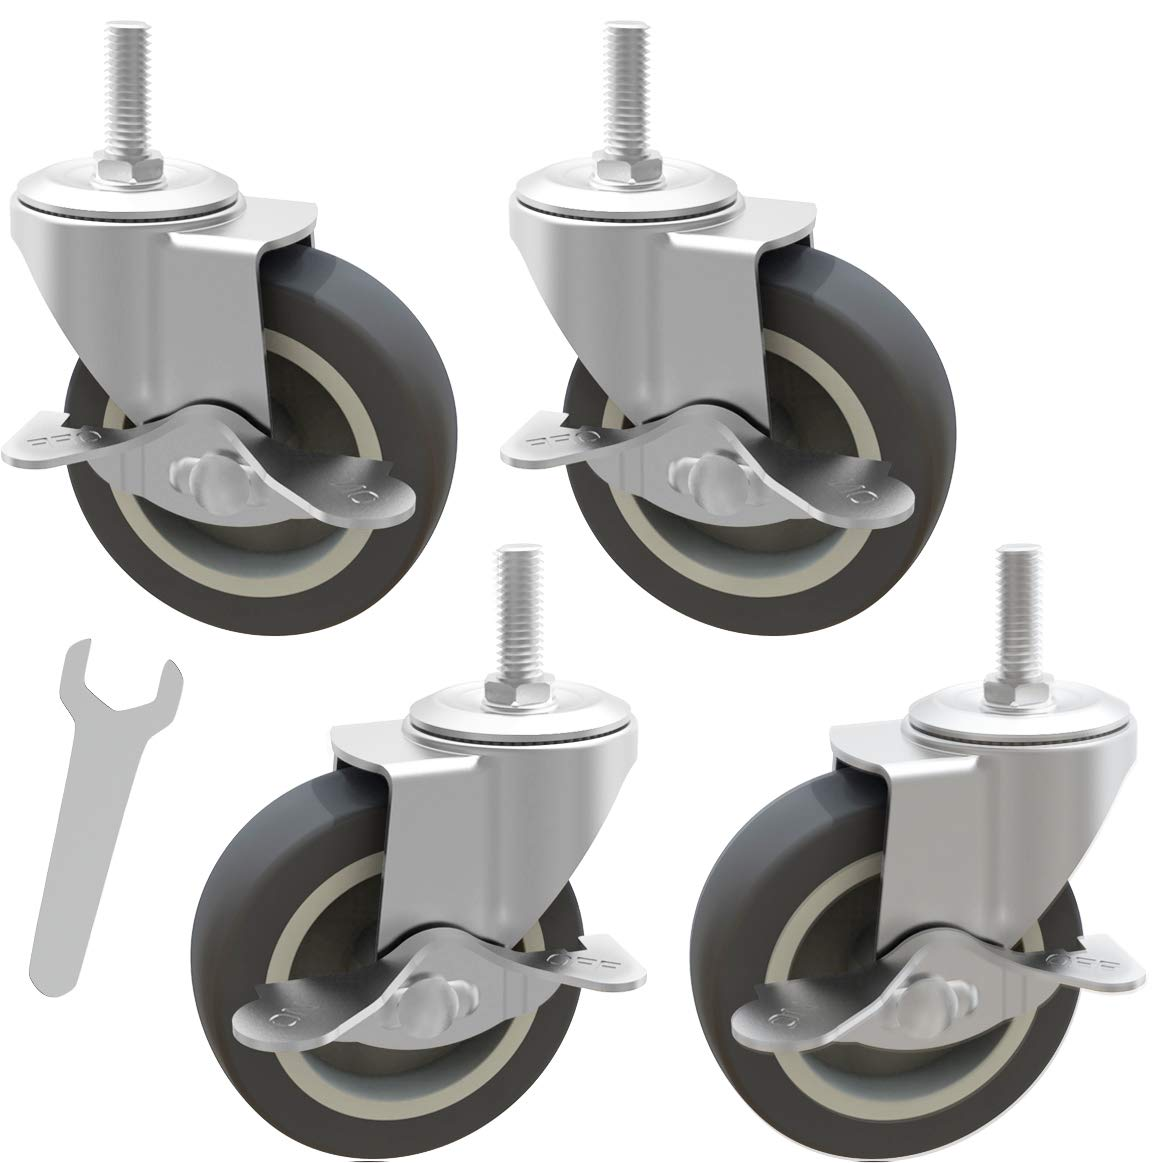 TrippNT 52985 Heavy Duty Threaded Stem Enclosed White Nylon and Rubber 4 Inch Total Lock Swivel Caster